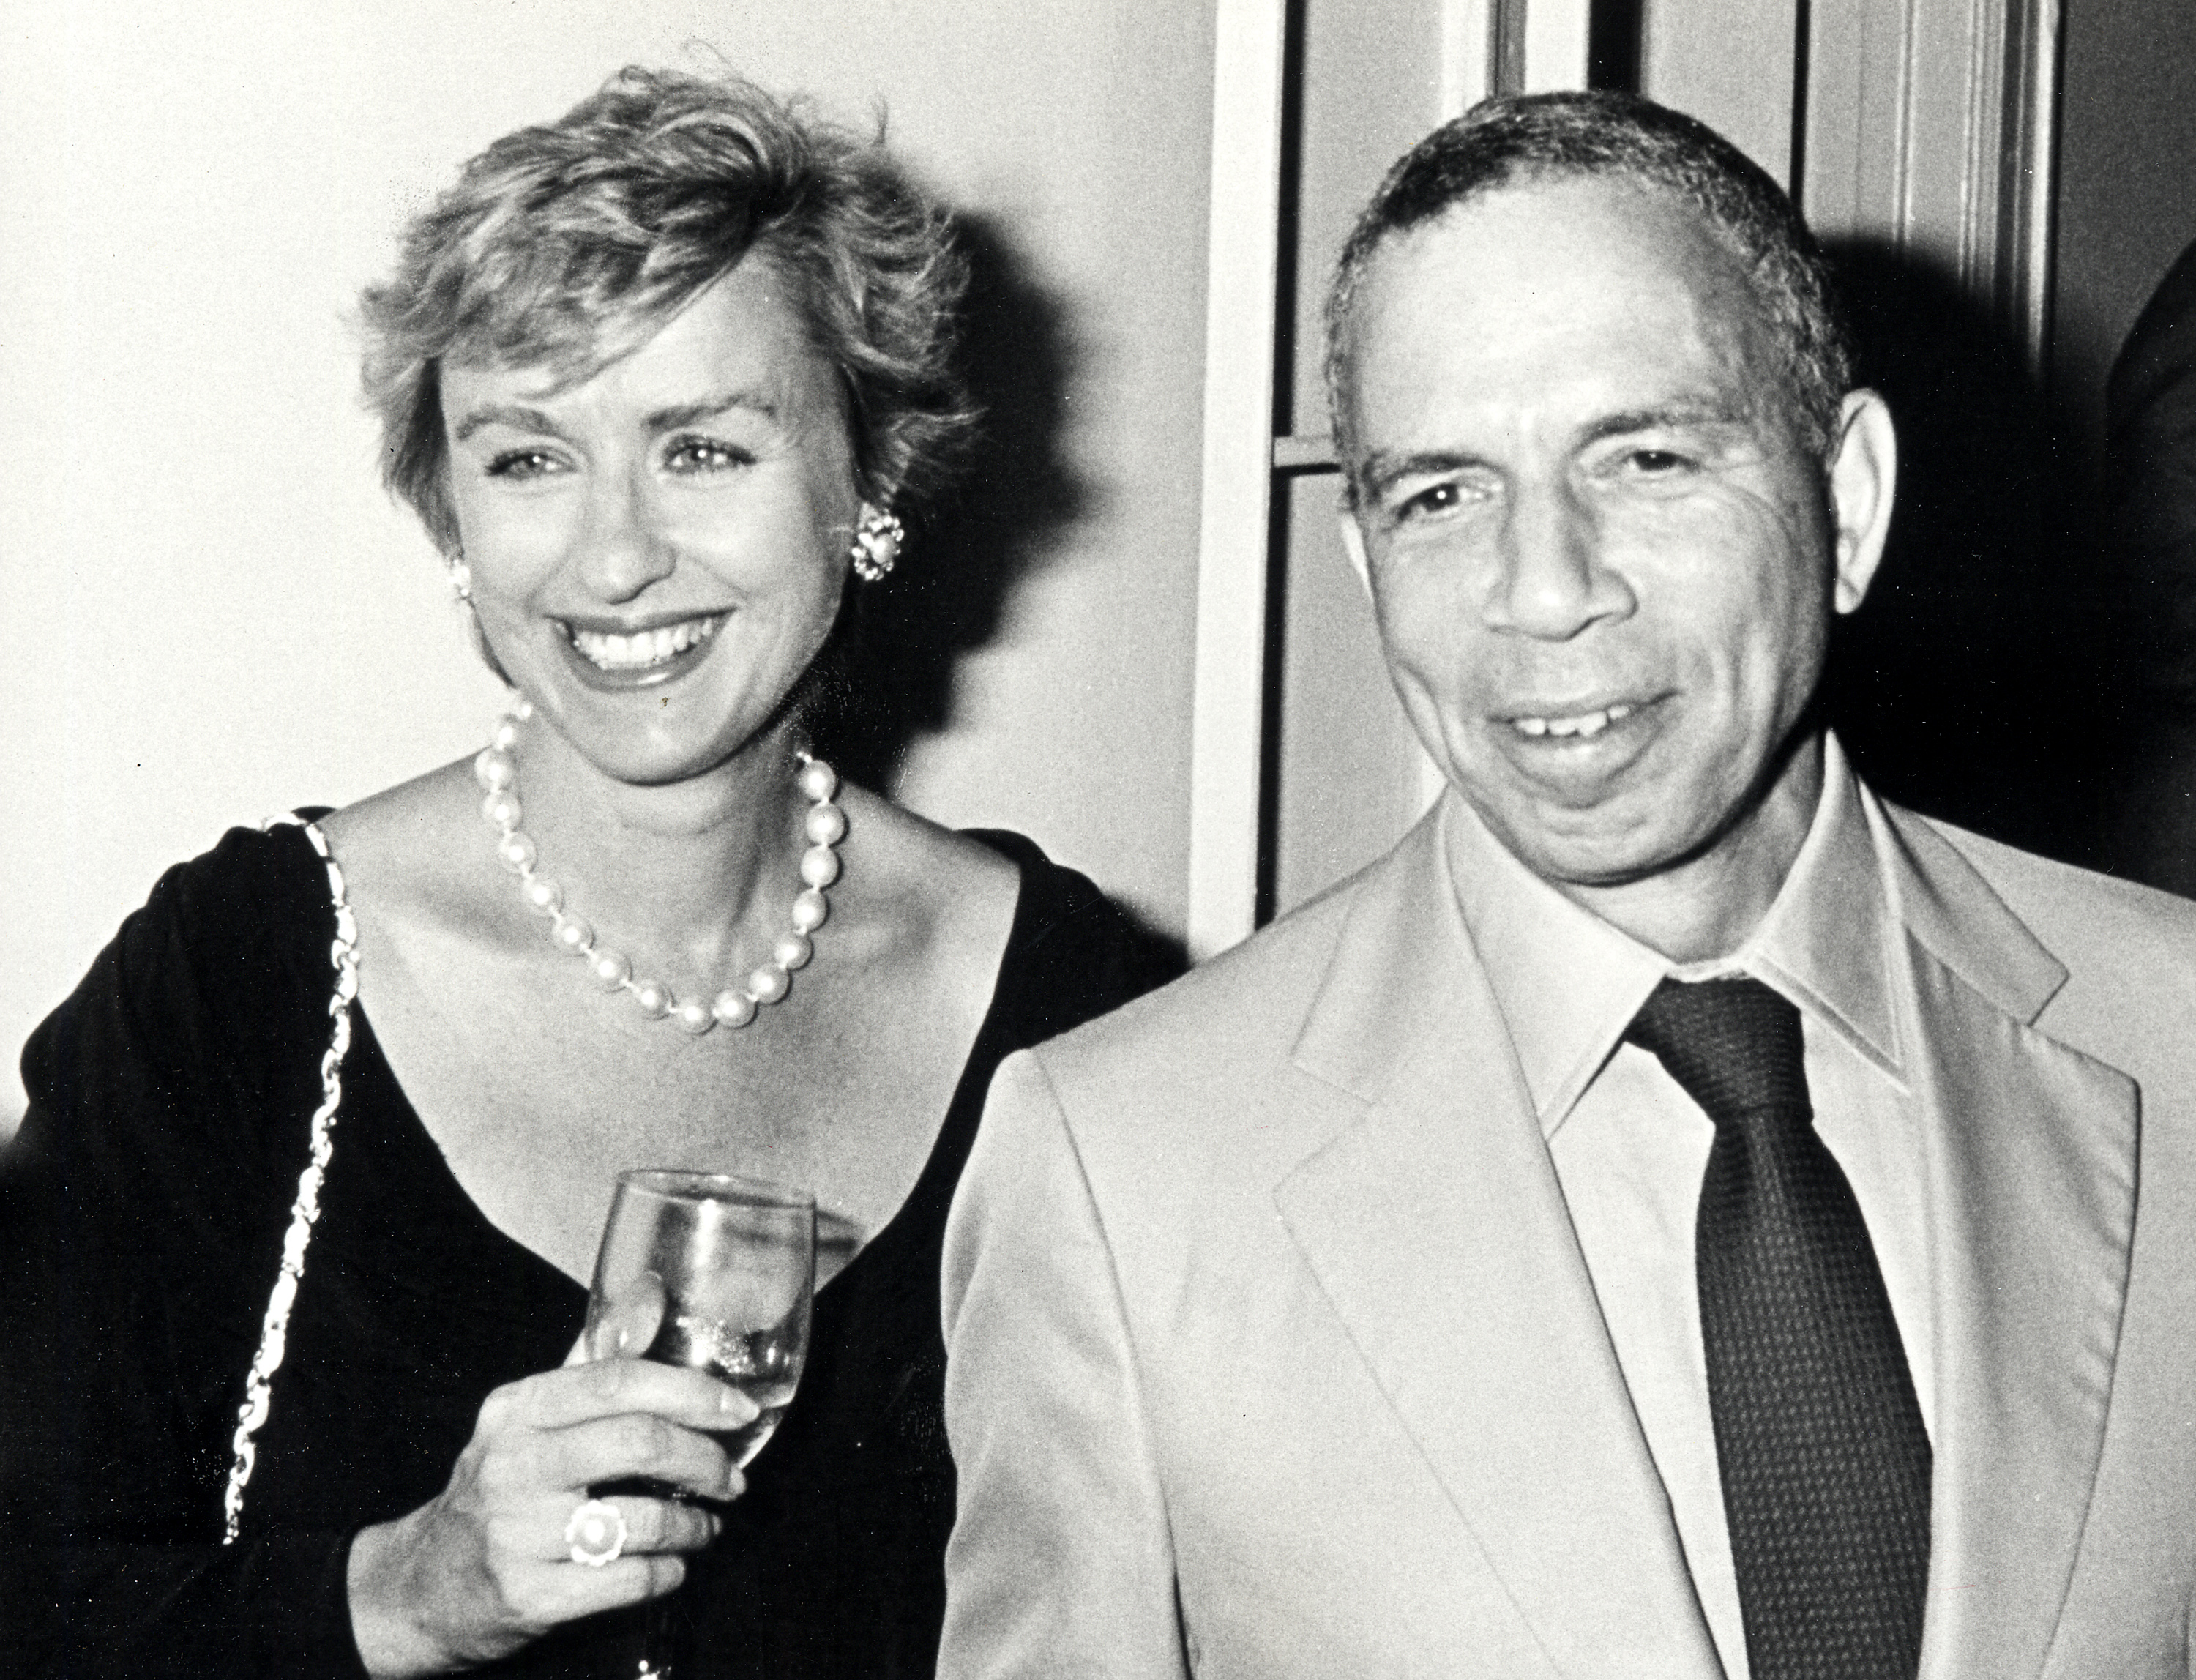 Publisher S.I. Newhouse, Jr., and editor Tina Brown attending 'Holy Terror: Andy Warhol Close Up' on August 8, 1990, in New York City